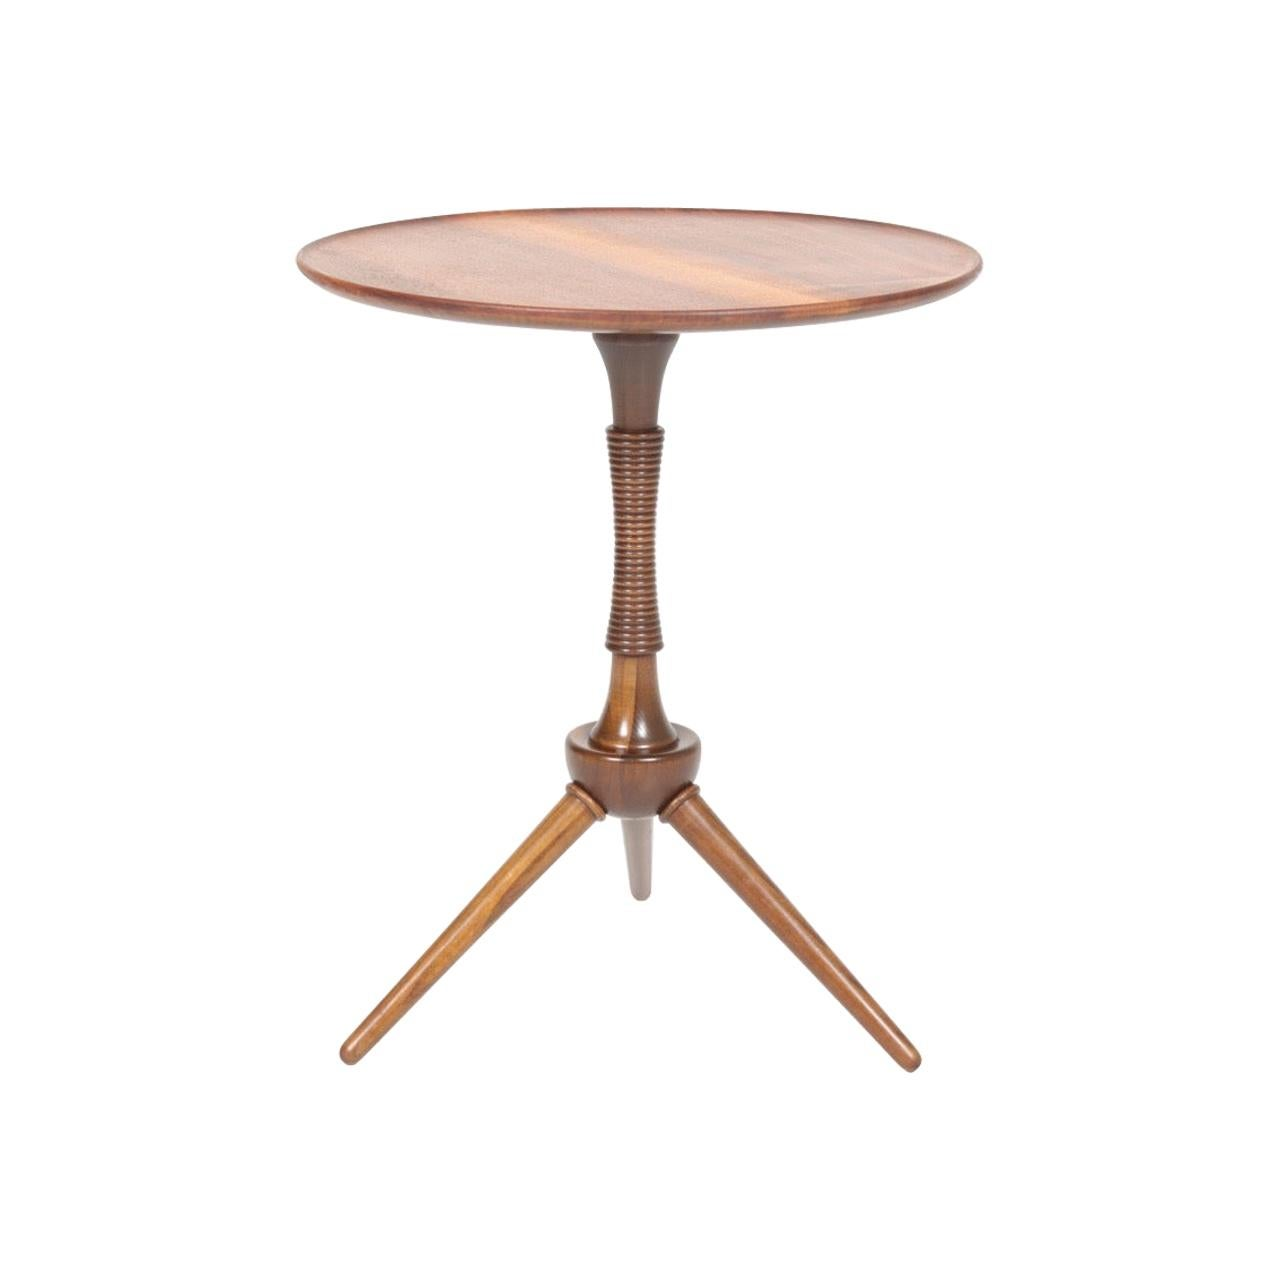 Midcentury Danish Side Table, Solid Mahogany by Cabinetmaker Frits Henningsen